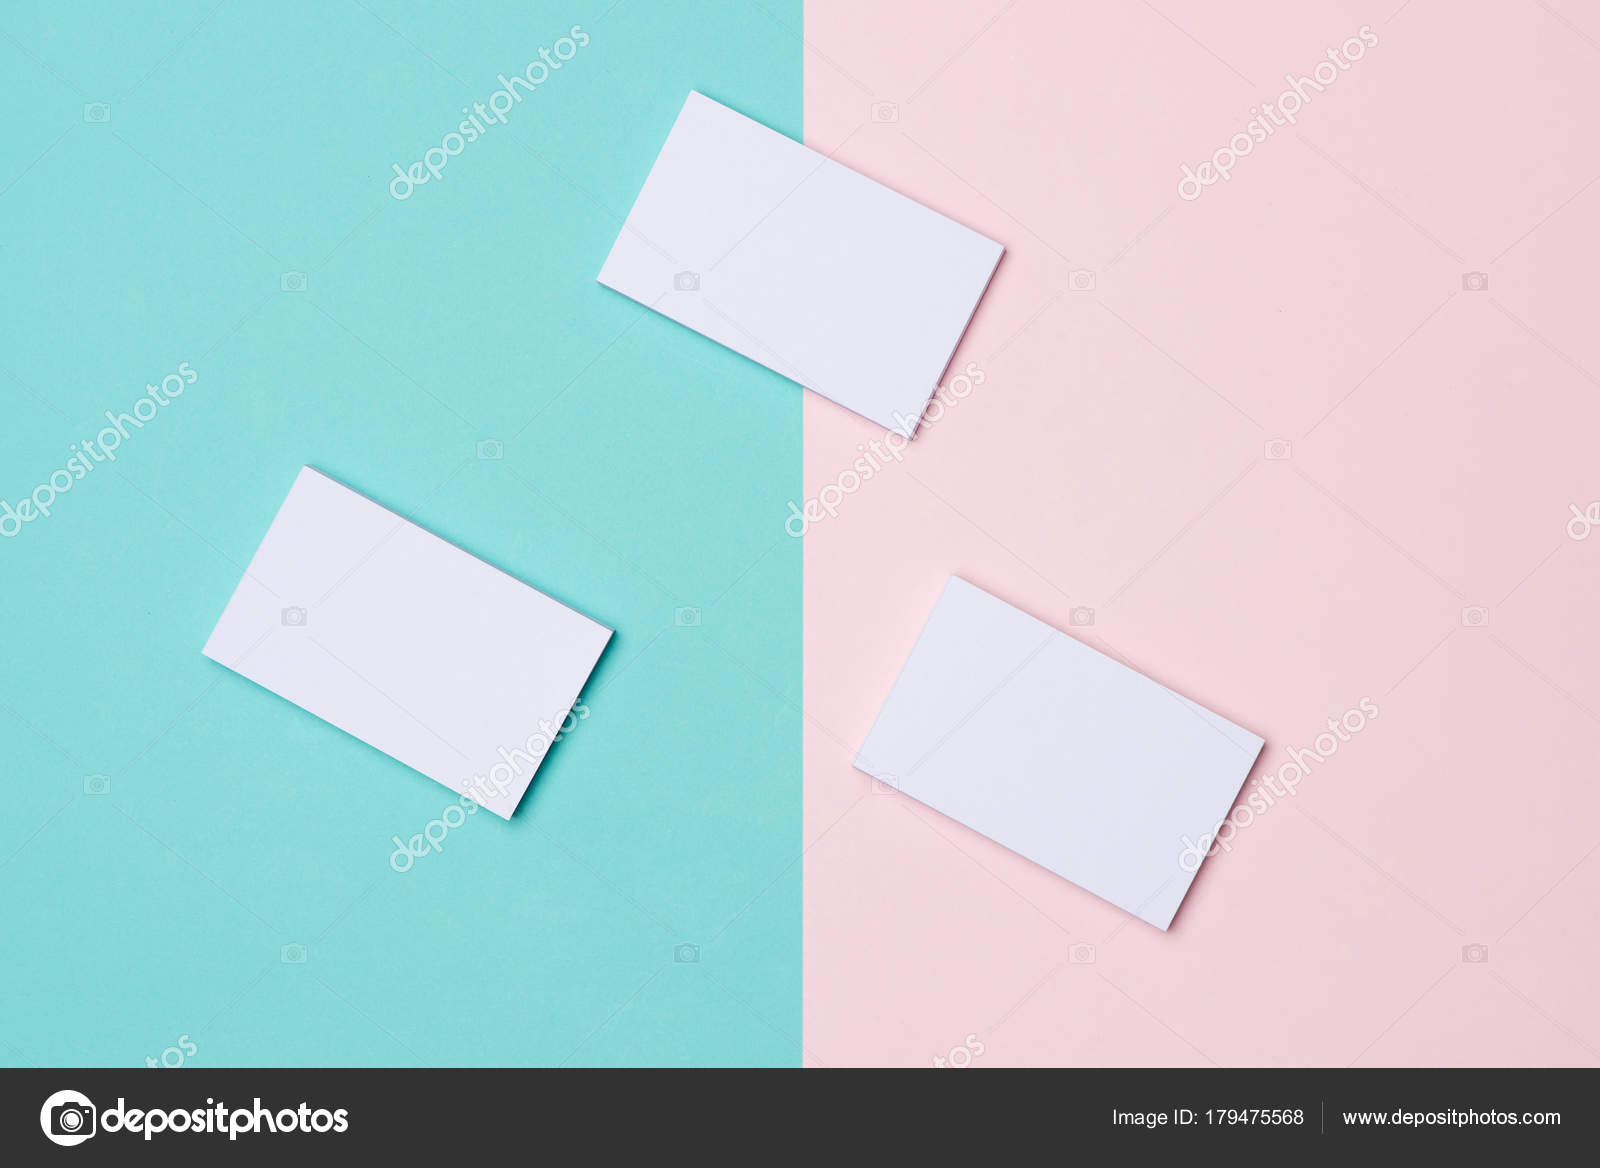 Business cards mockup two color background stock photo makidotvn business cards mockup on two color background photo by makidotvn reheart Choice Image